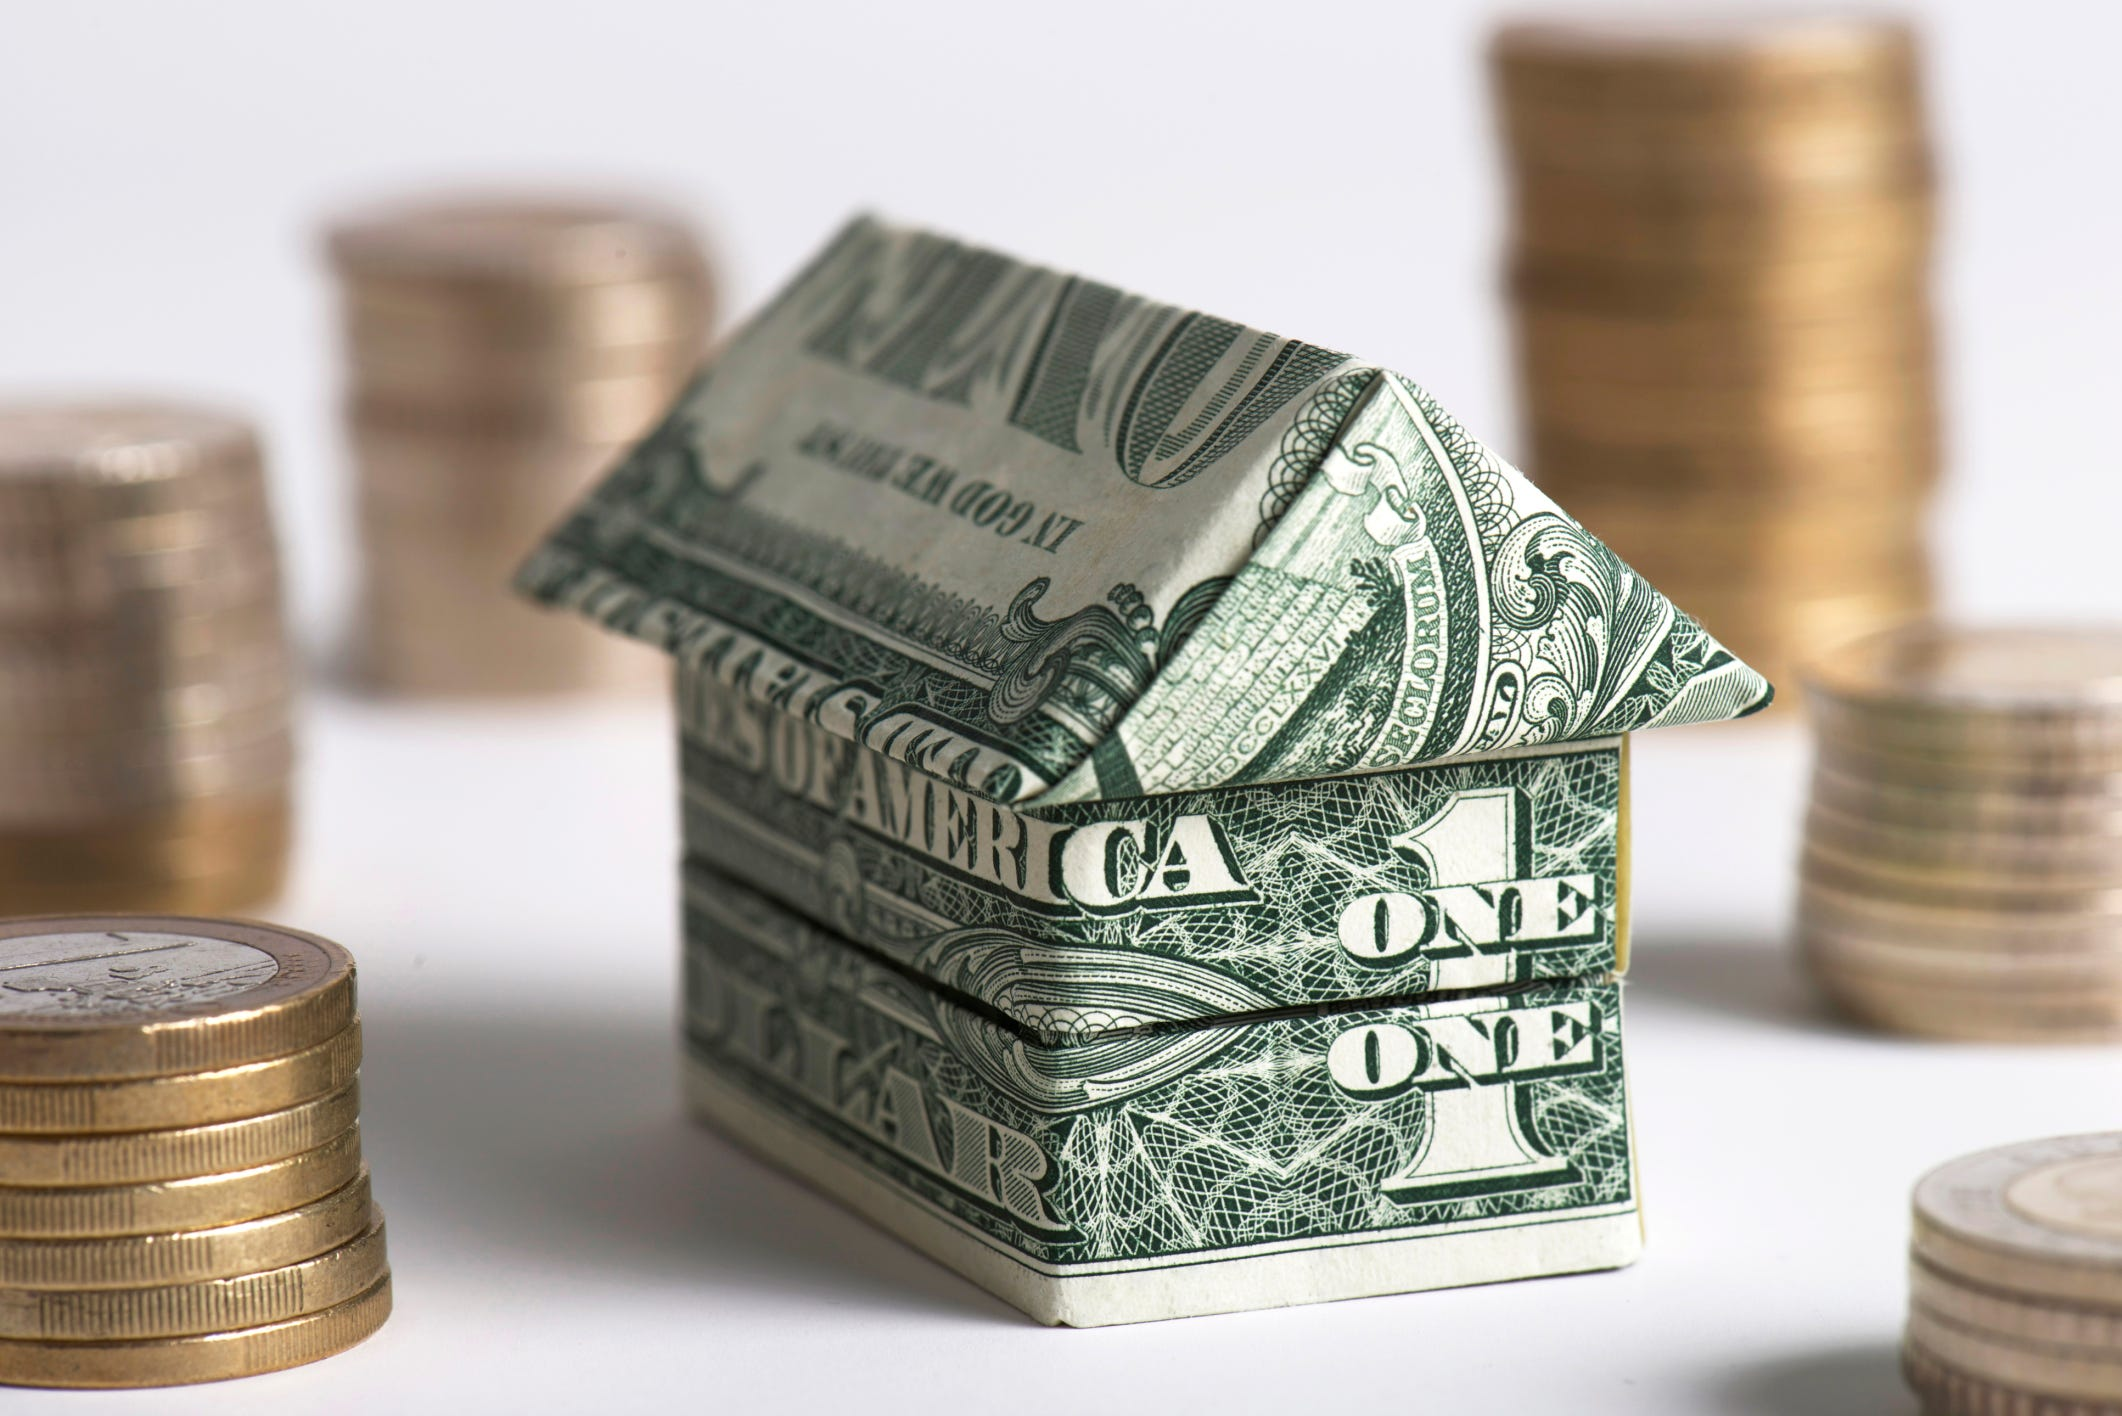 Can't afford 15 year mortgage? Then don't buy